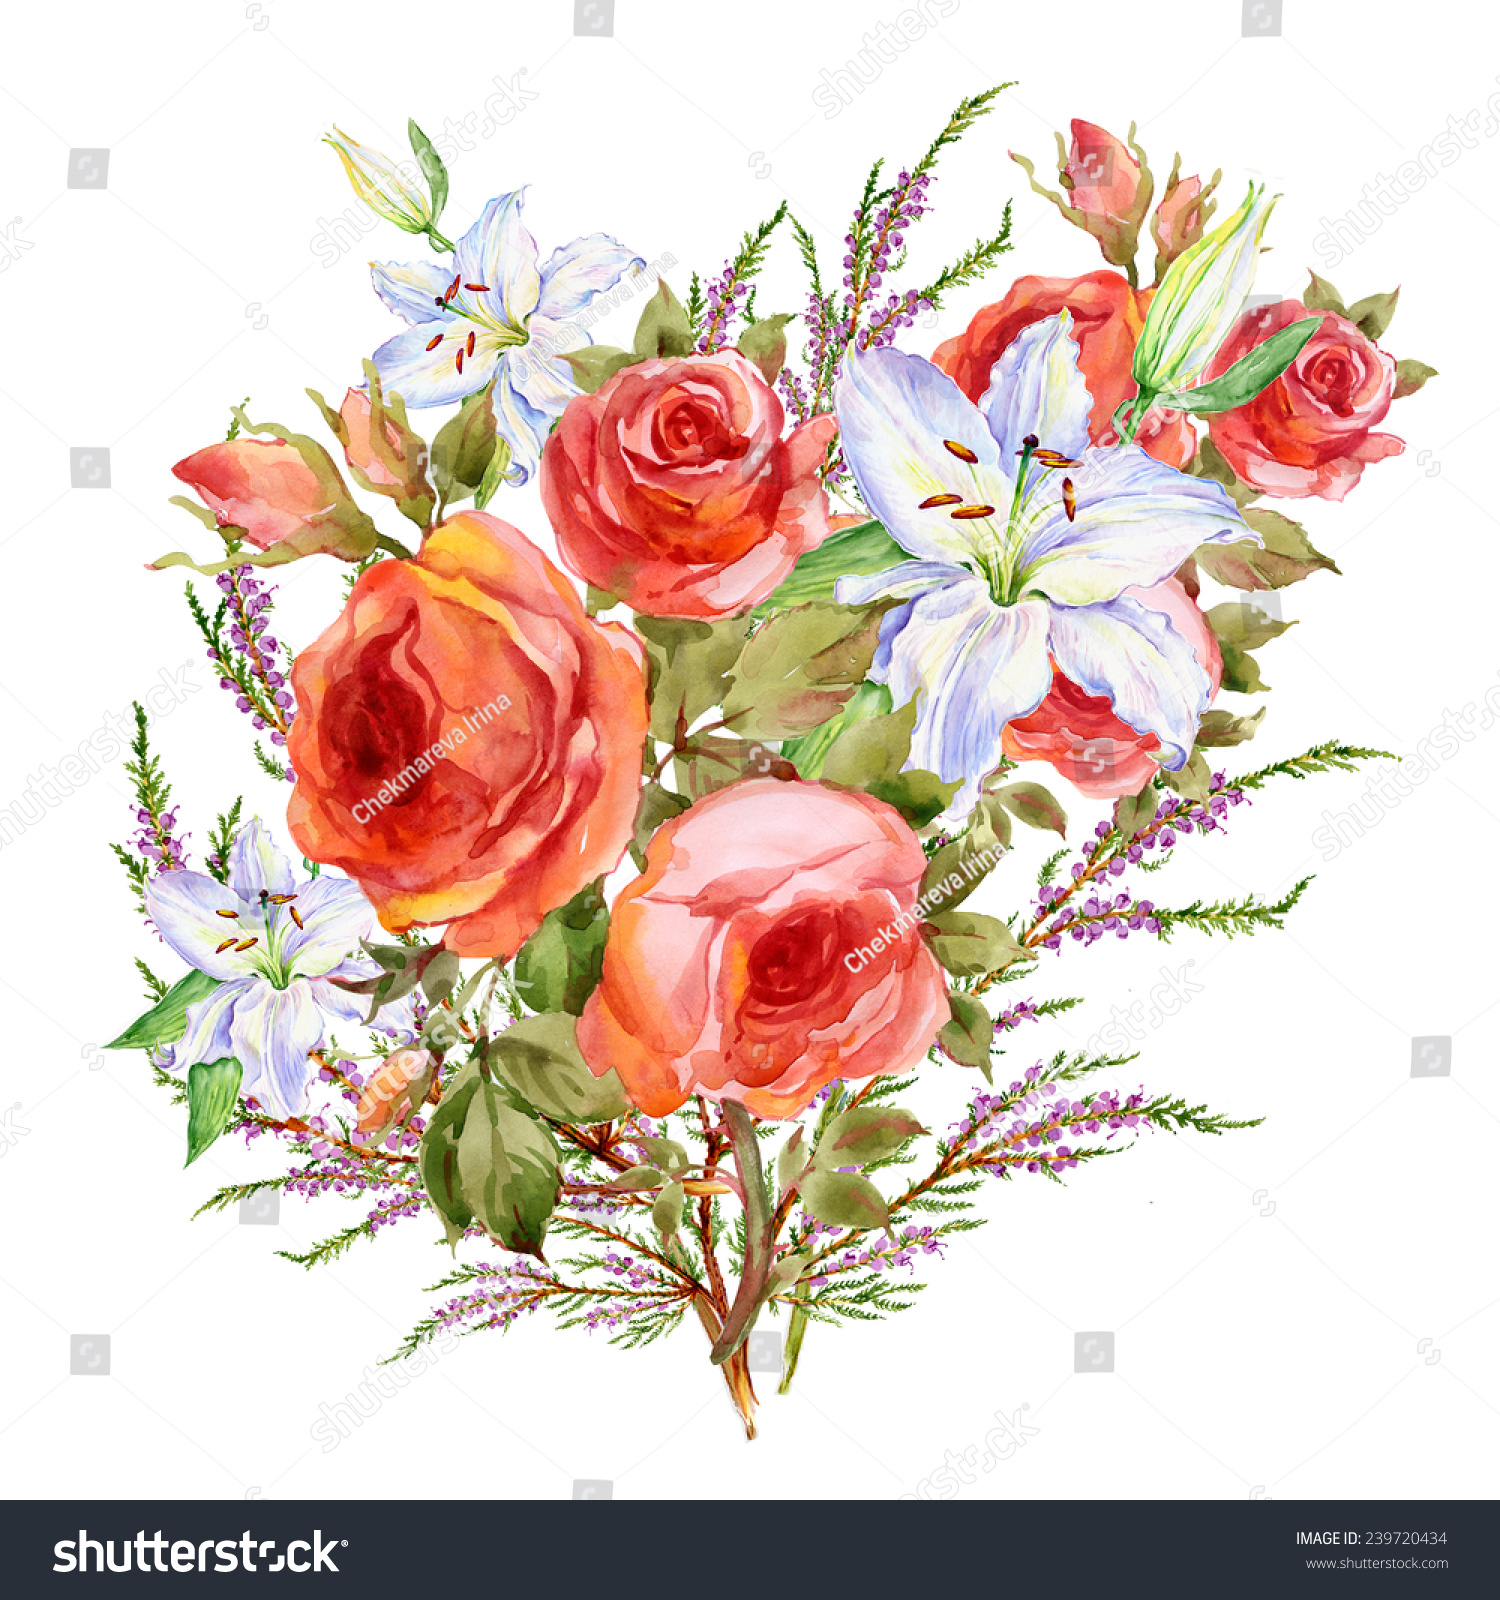 Watercolor Bouquet Beautiful Flowers Stock Illustration 239720434 ...